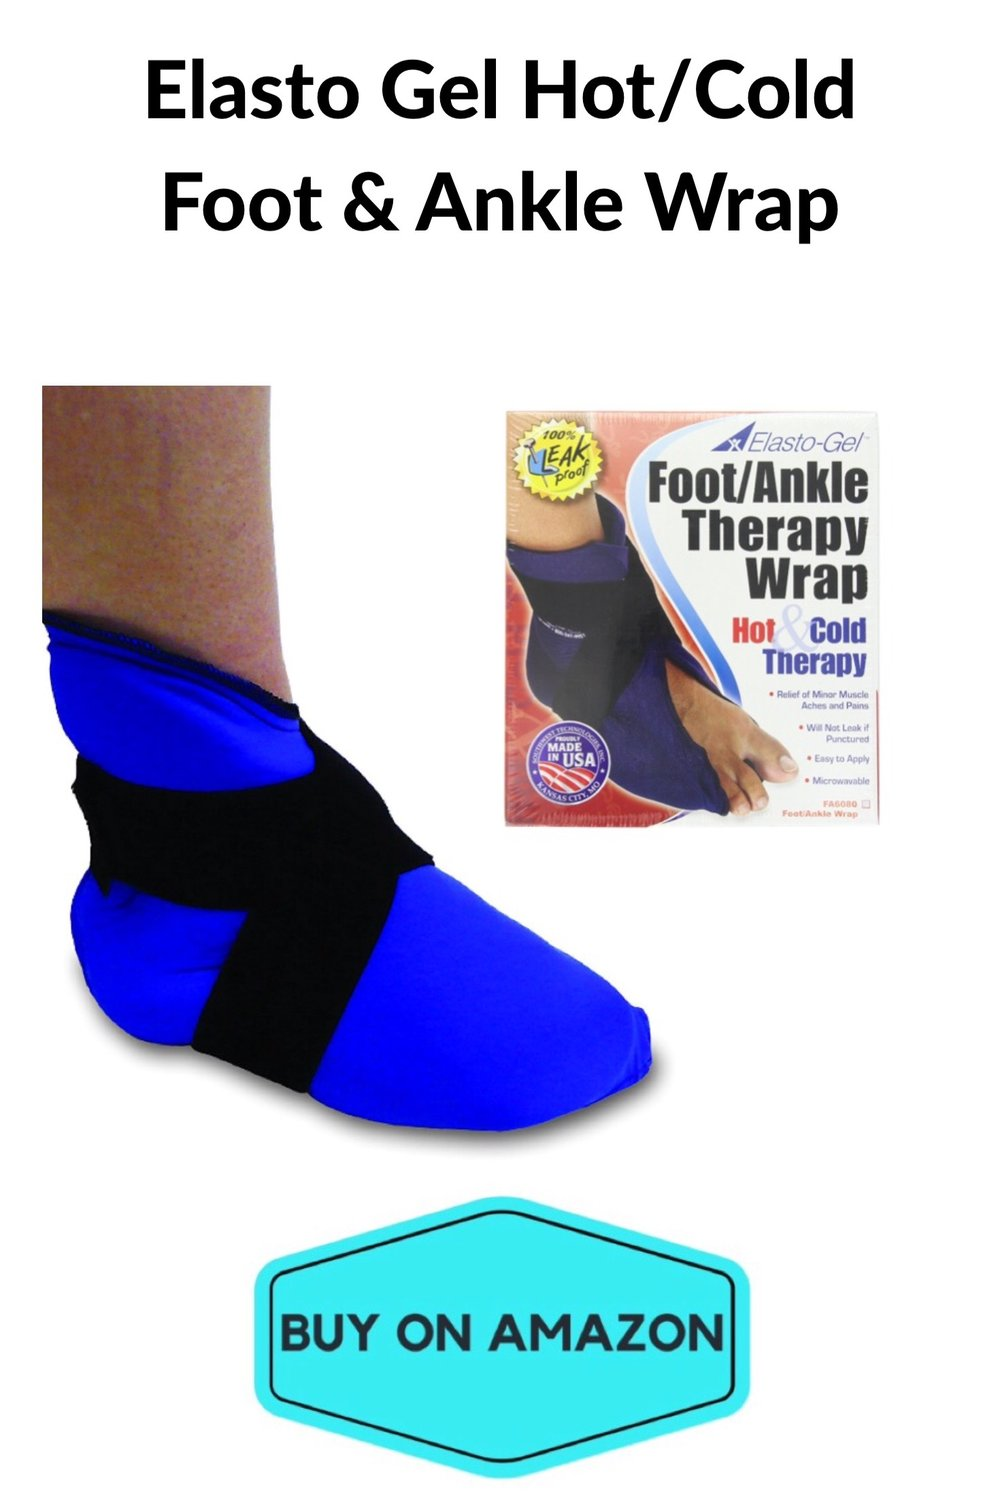 Elasto Gel Hot/Cold Foot & Ankle Wrap